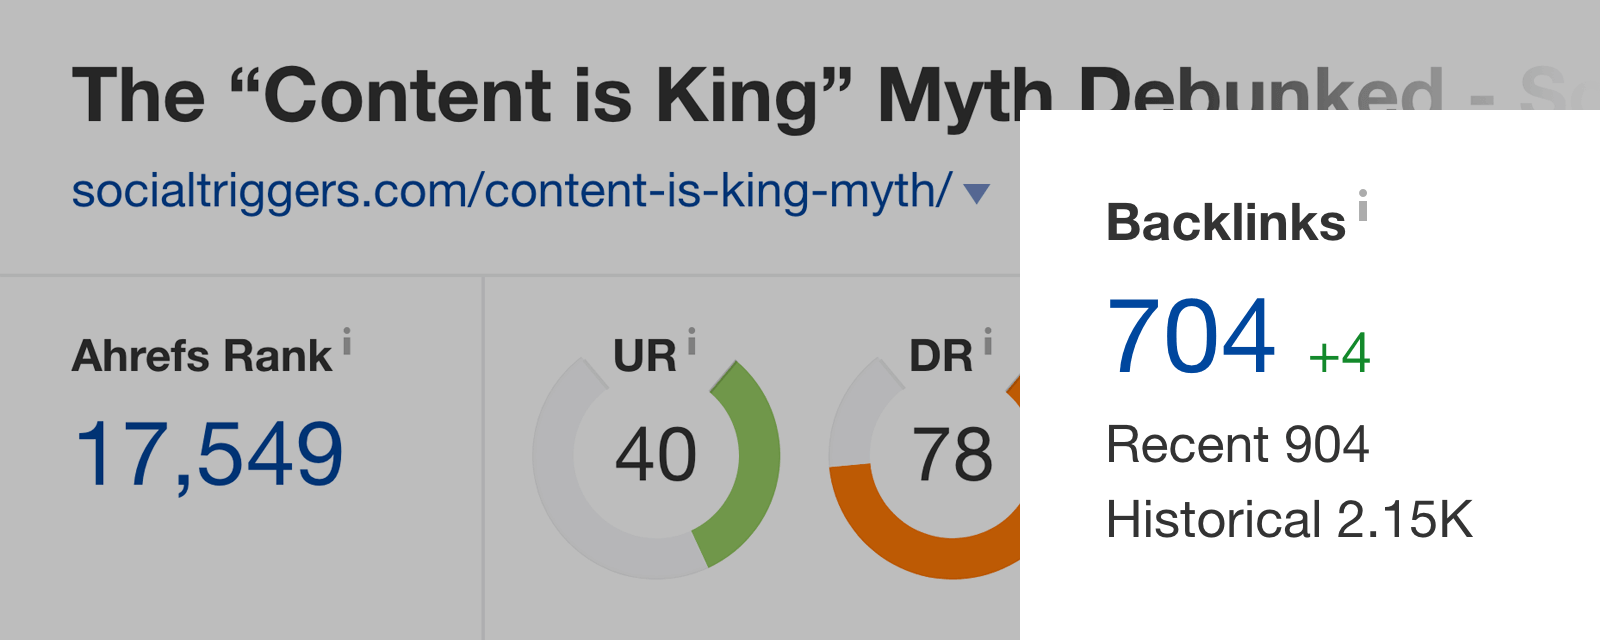 content-is-king-backlinks